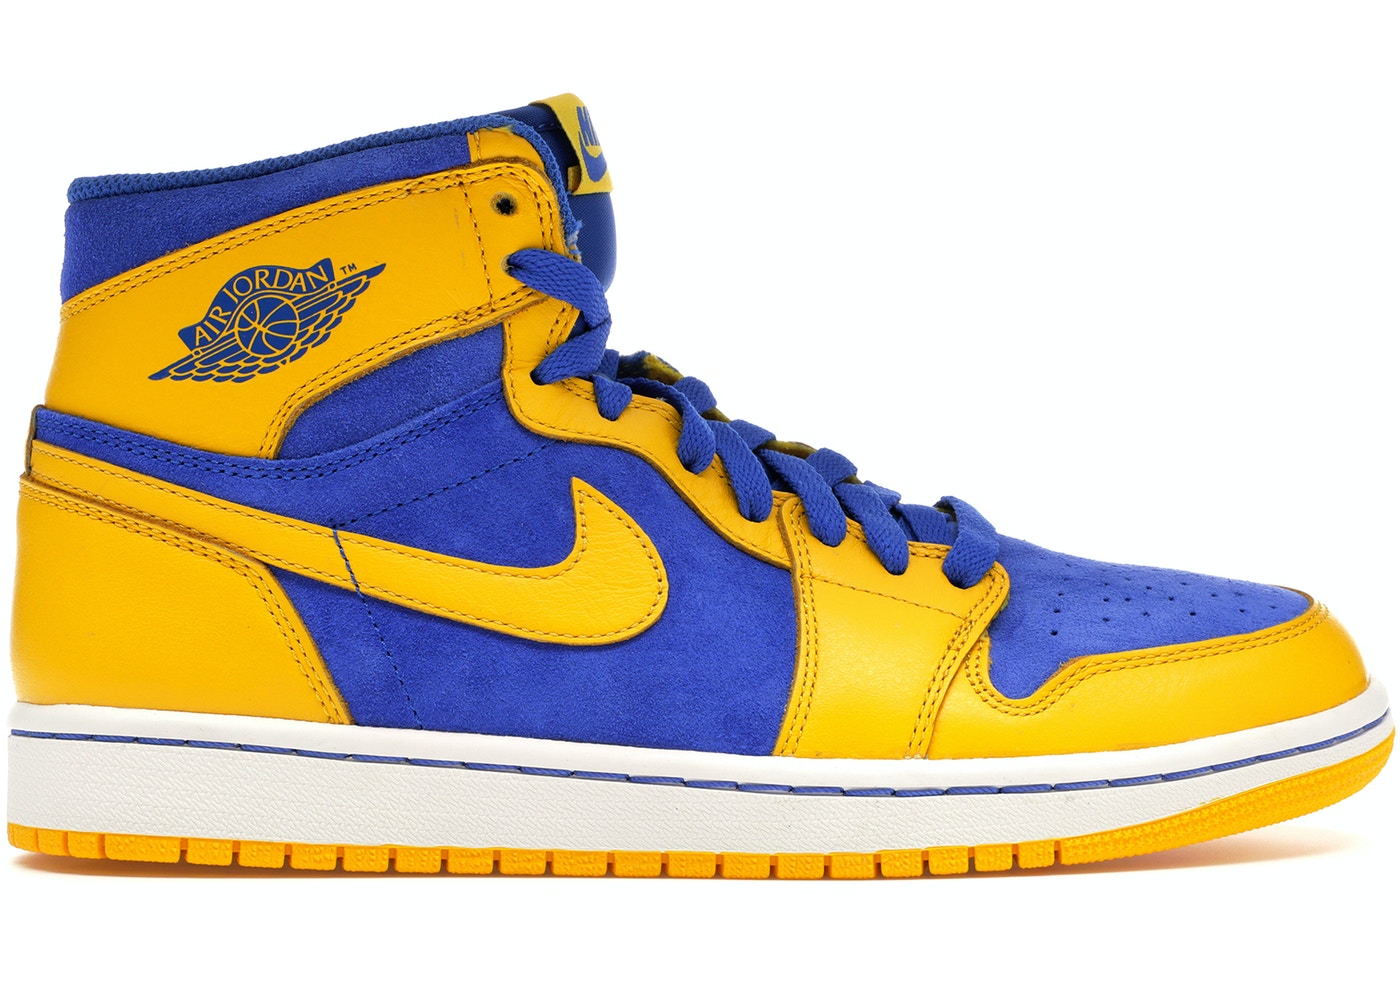 Top 10 Best Air Jordan 1 High OG Colorways Of All-Time